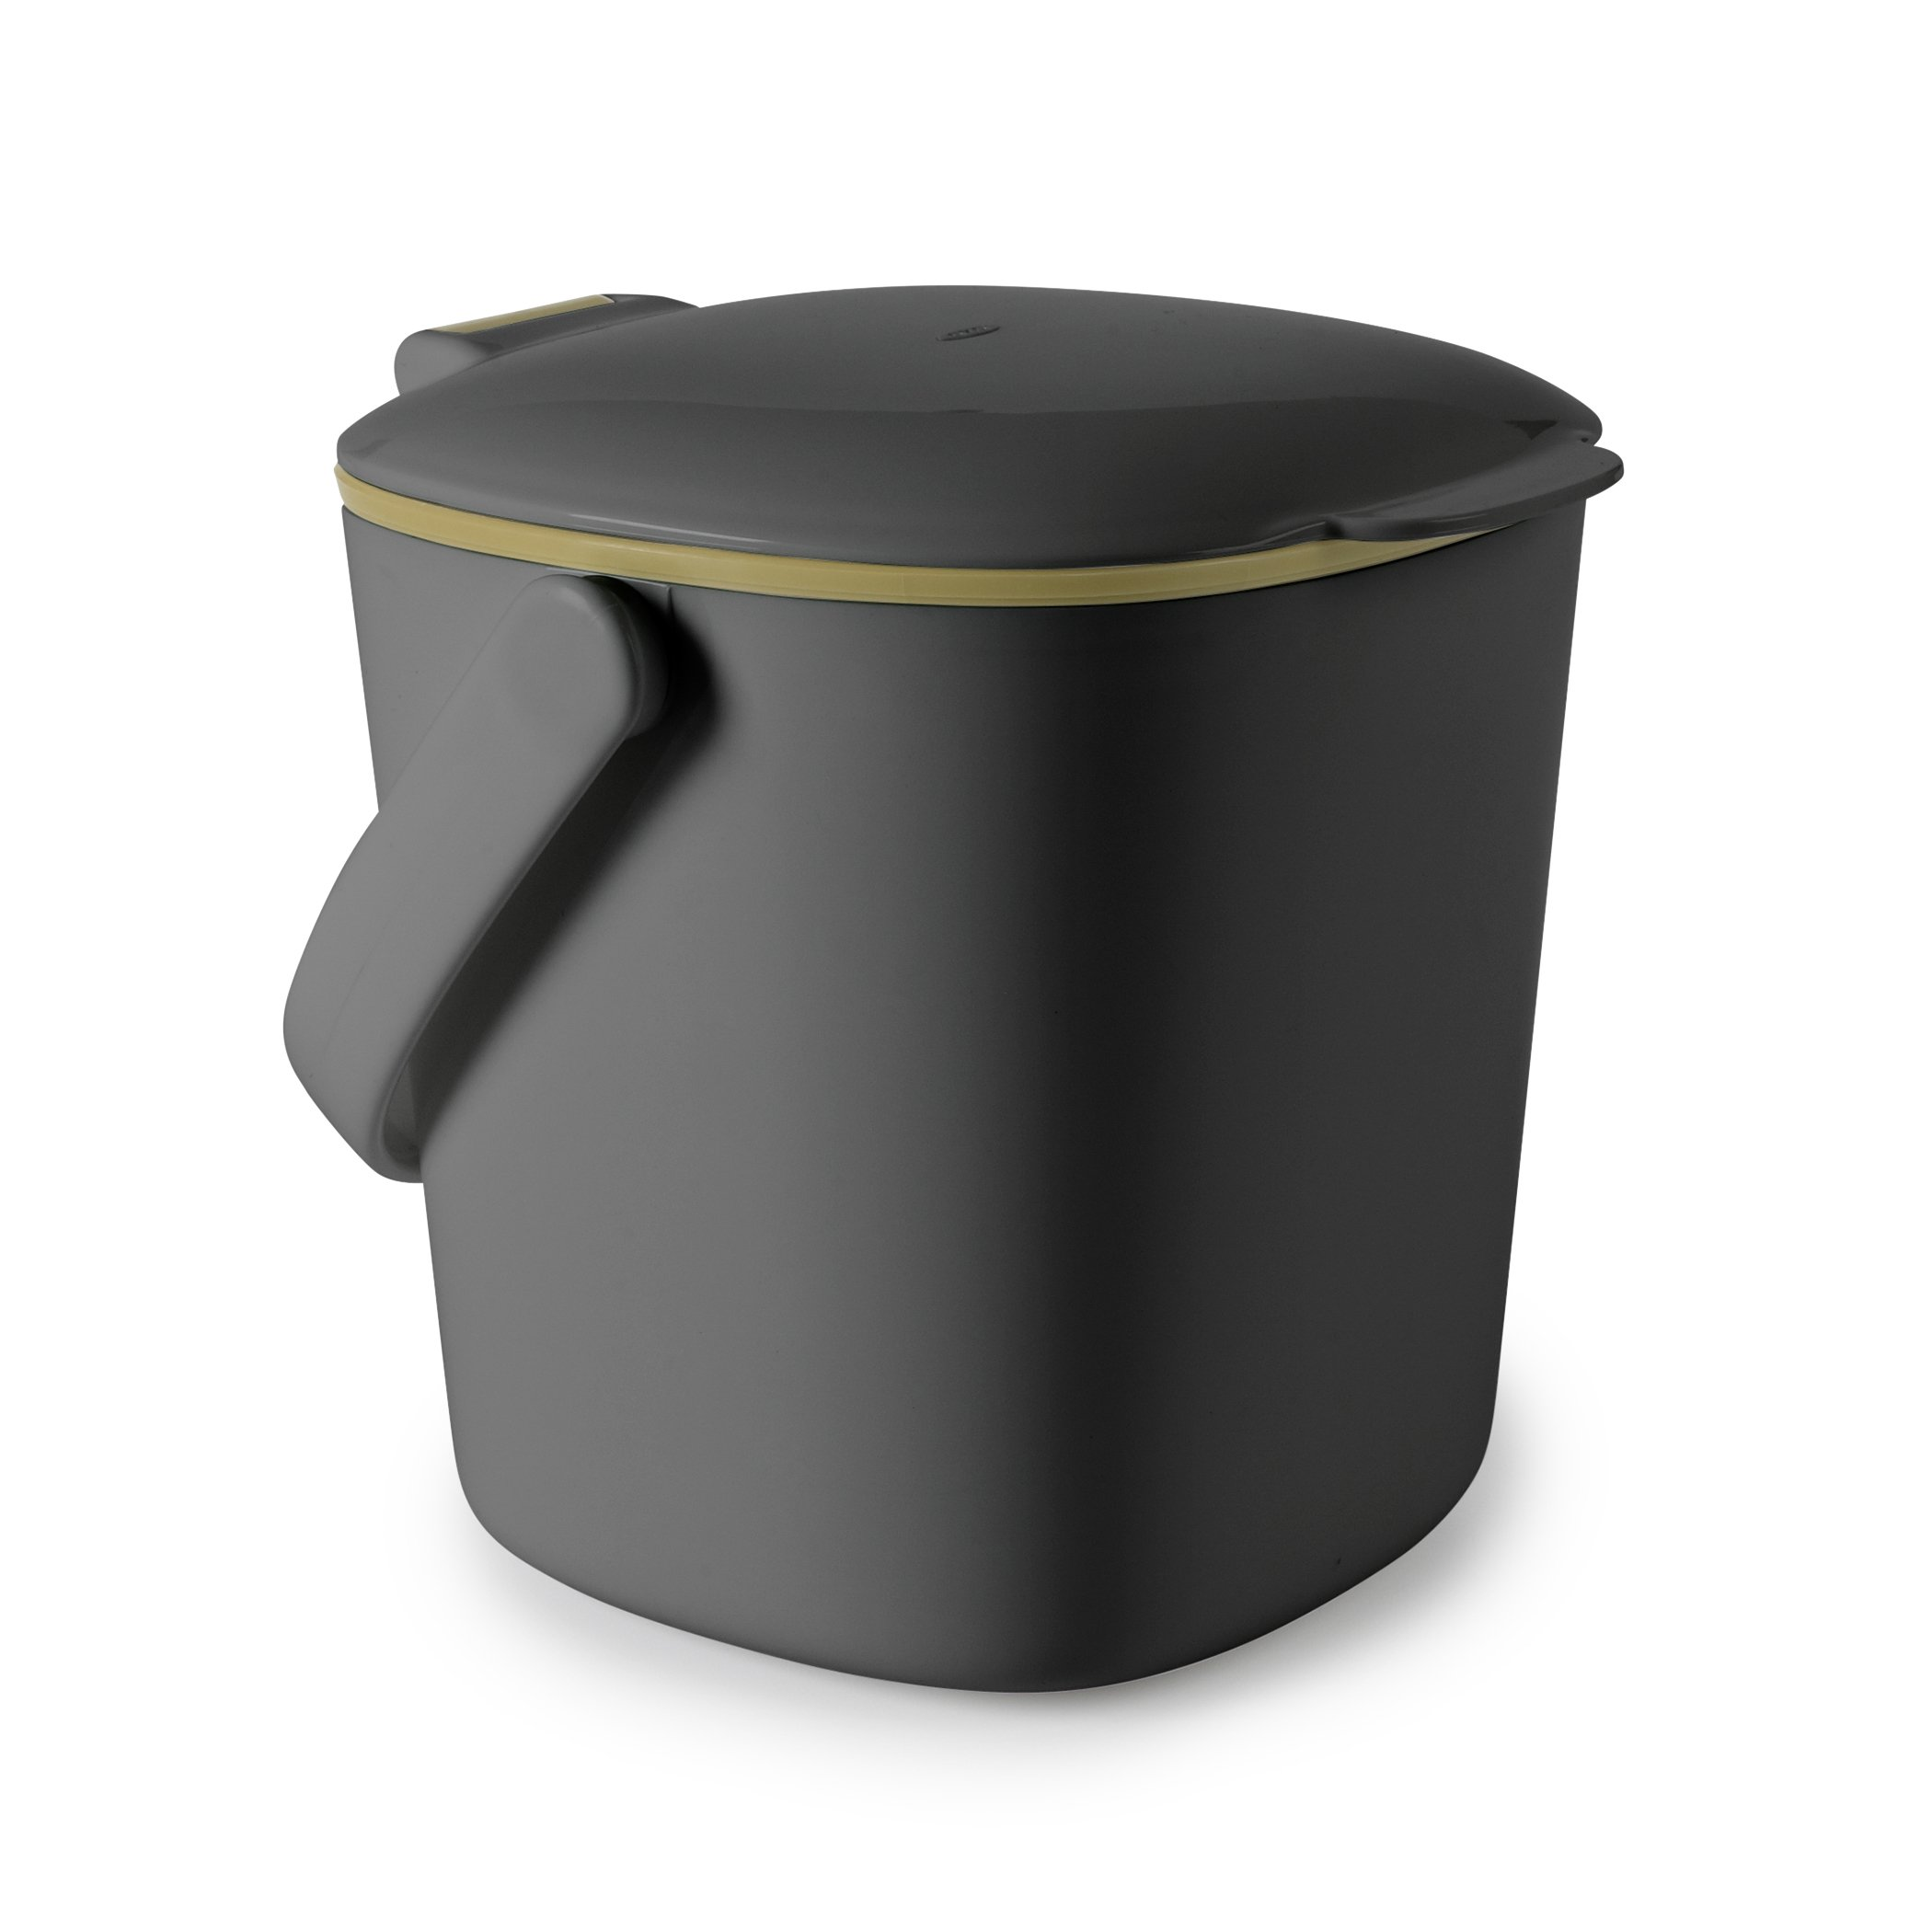 OXO Good Grips Easy Clean Compost Bin, Gray